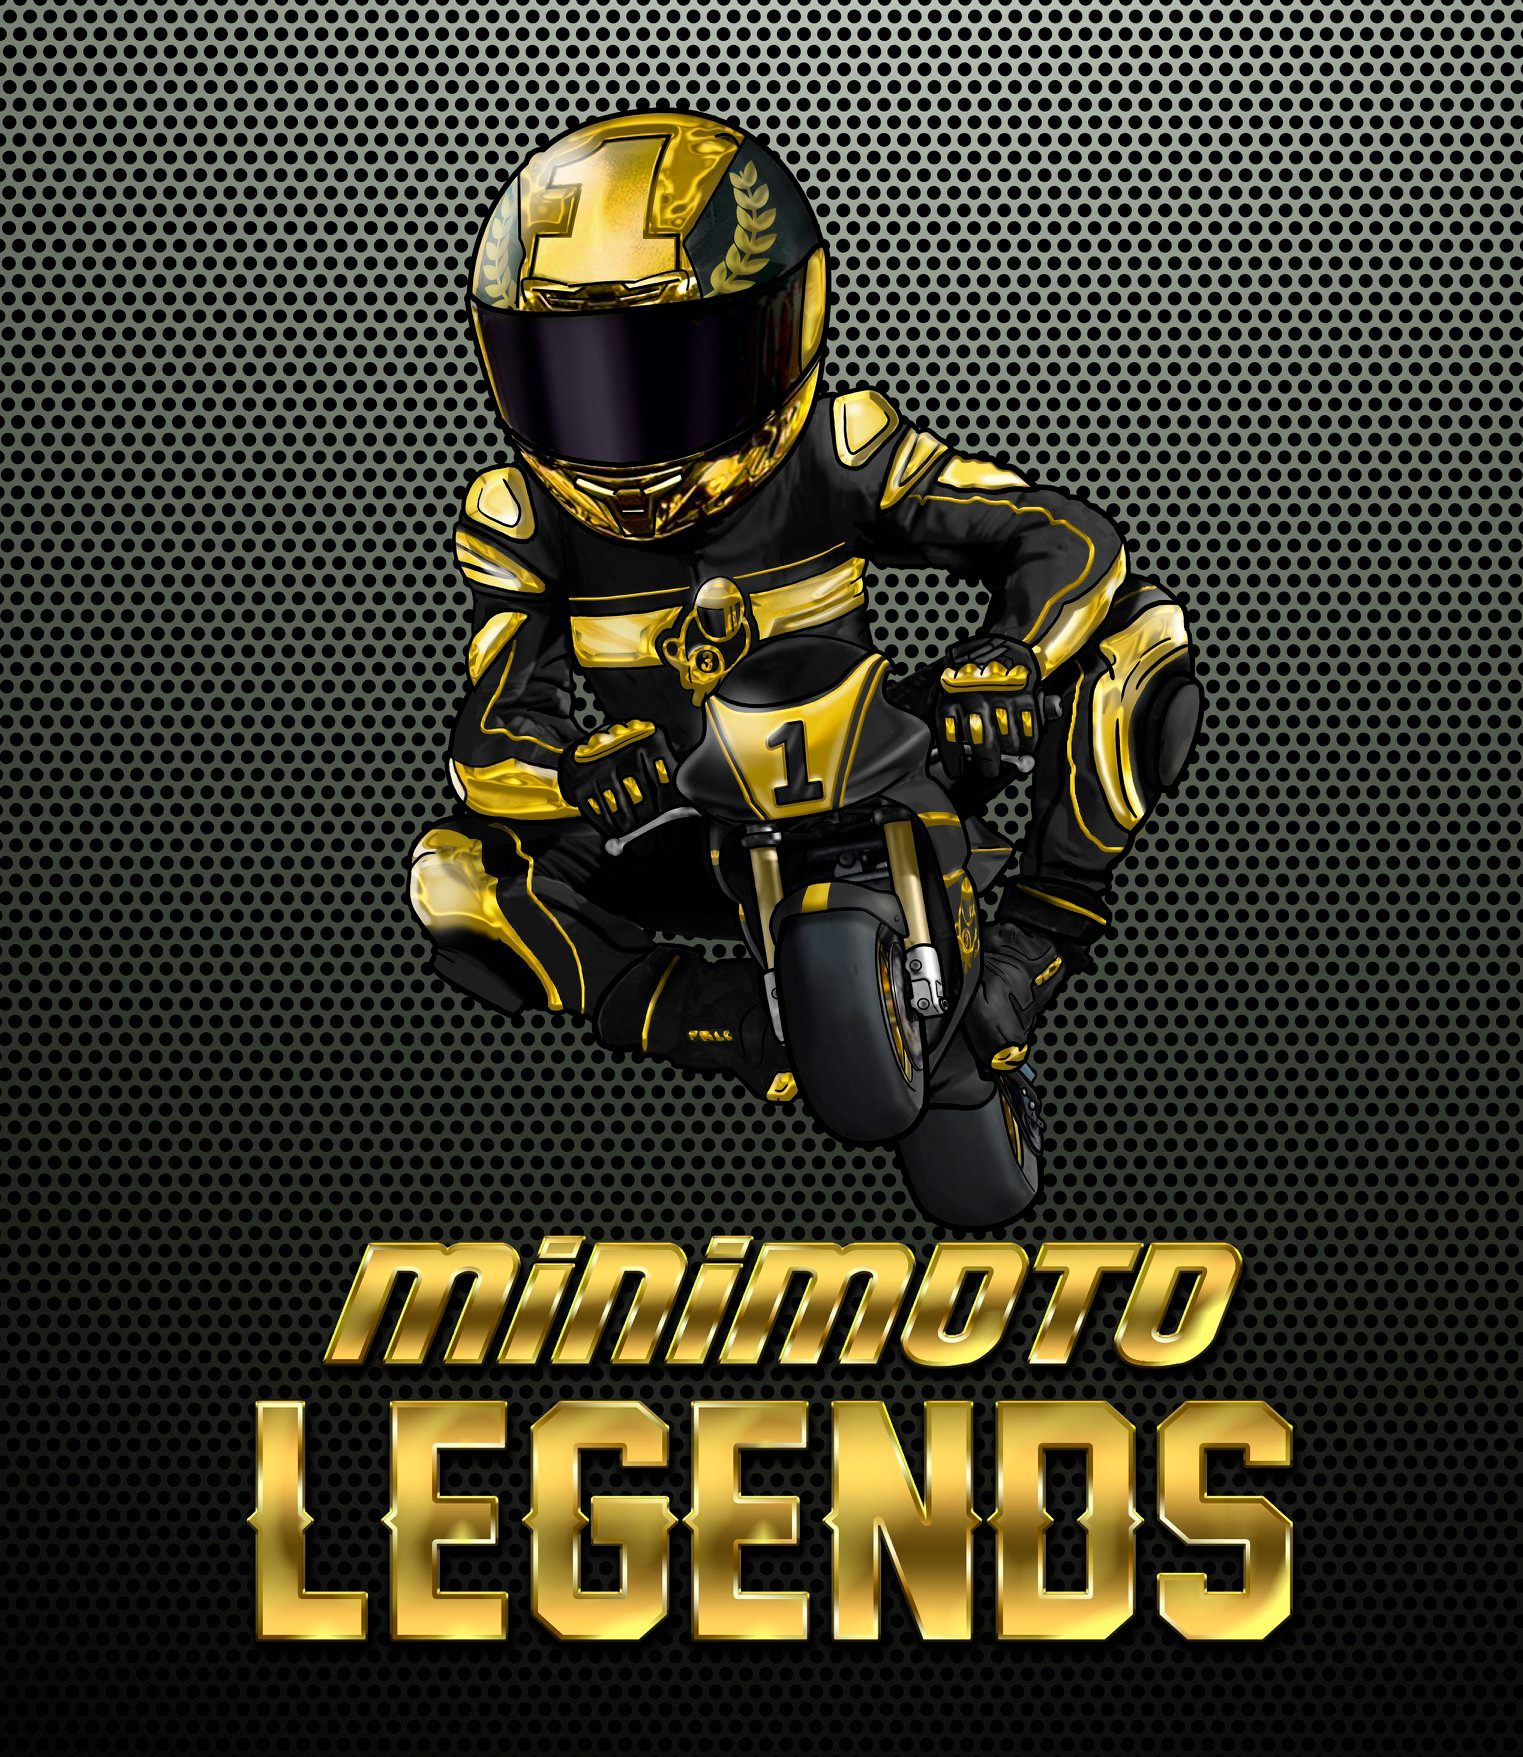 Minimotos Legends 2020